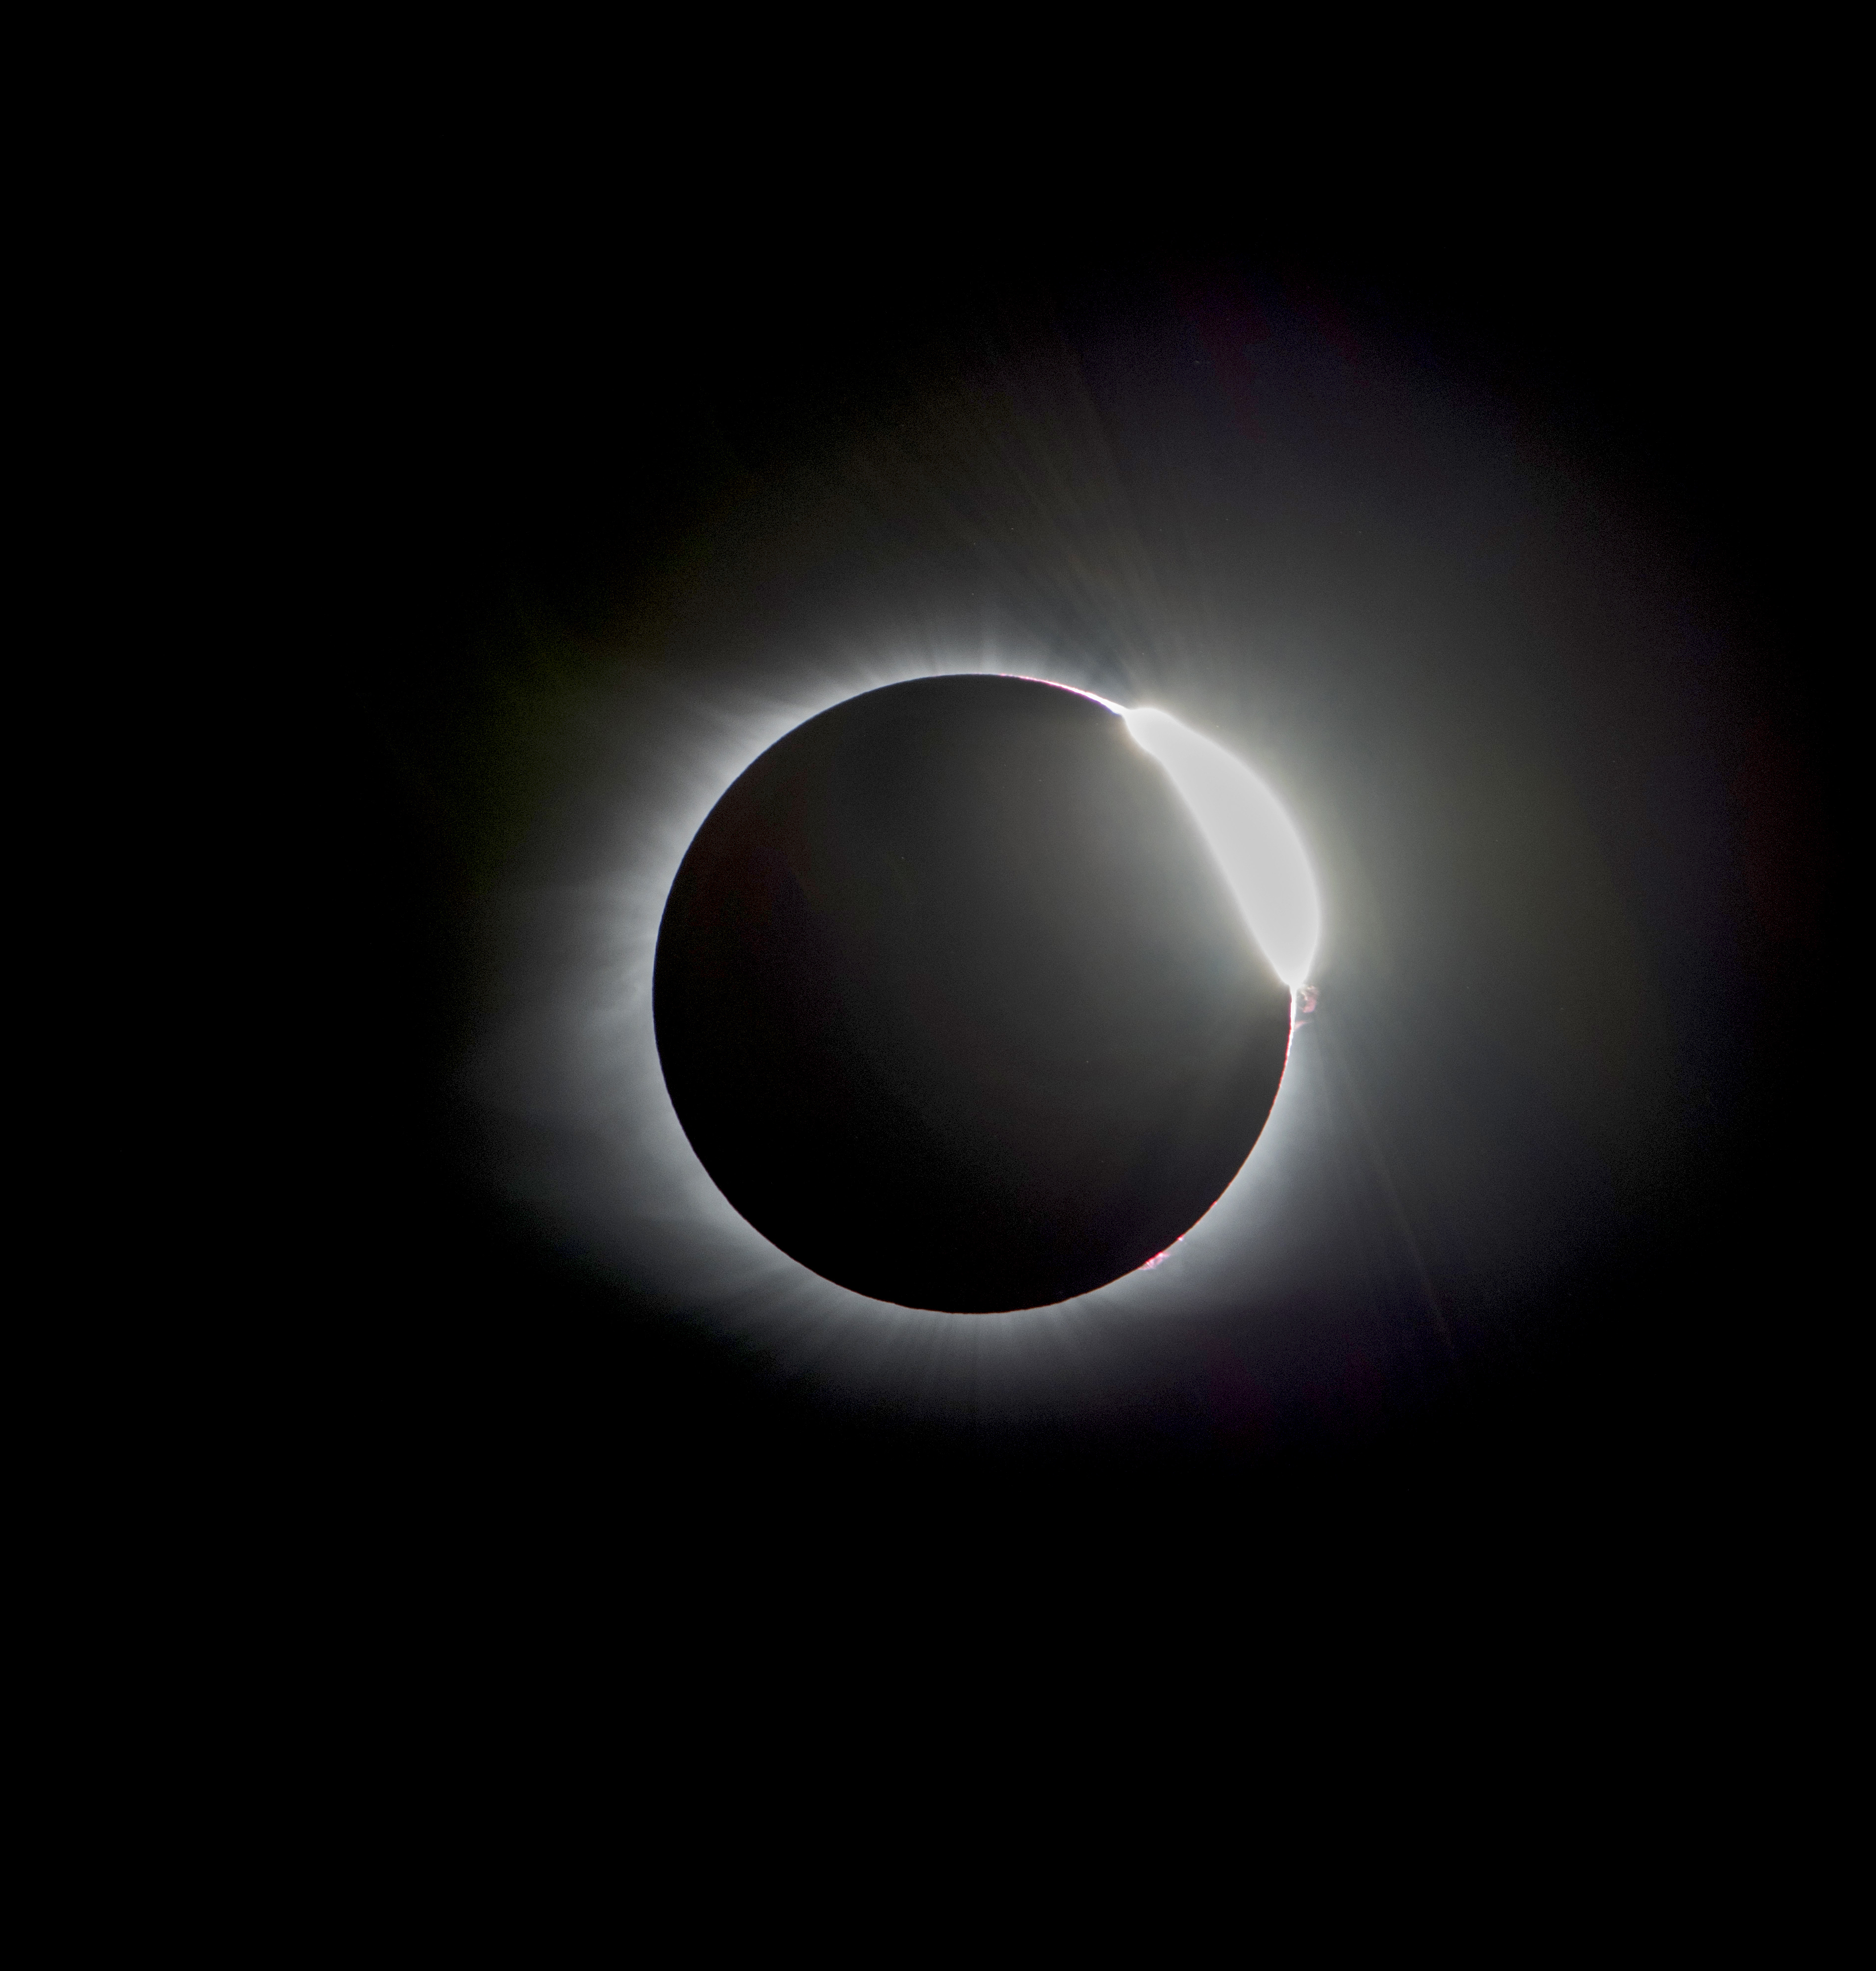 Total Solar Eclipse Peeking out 2017